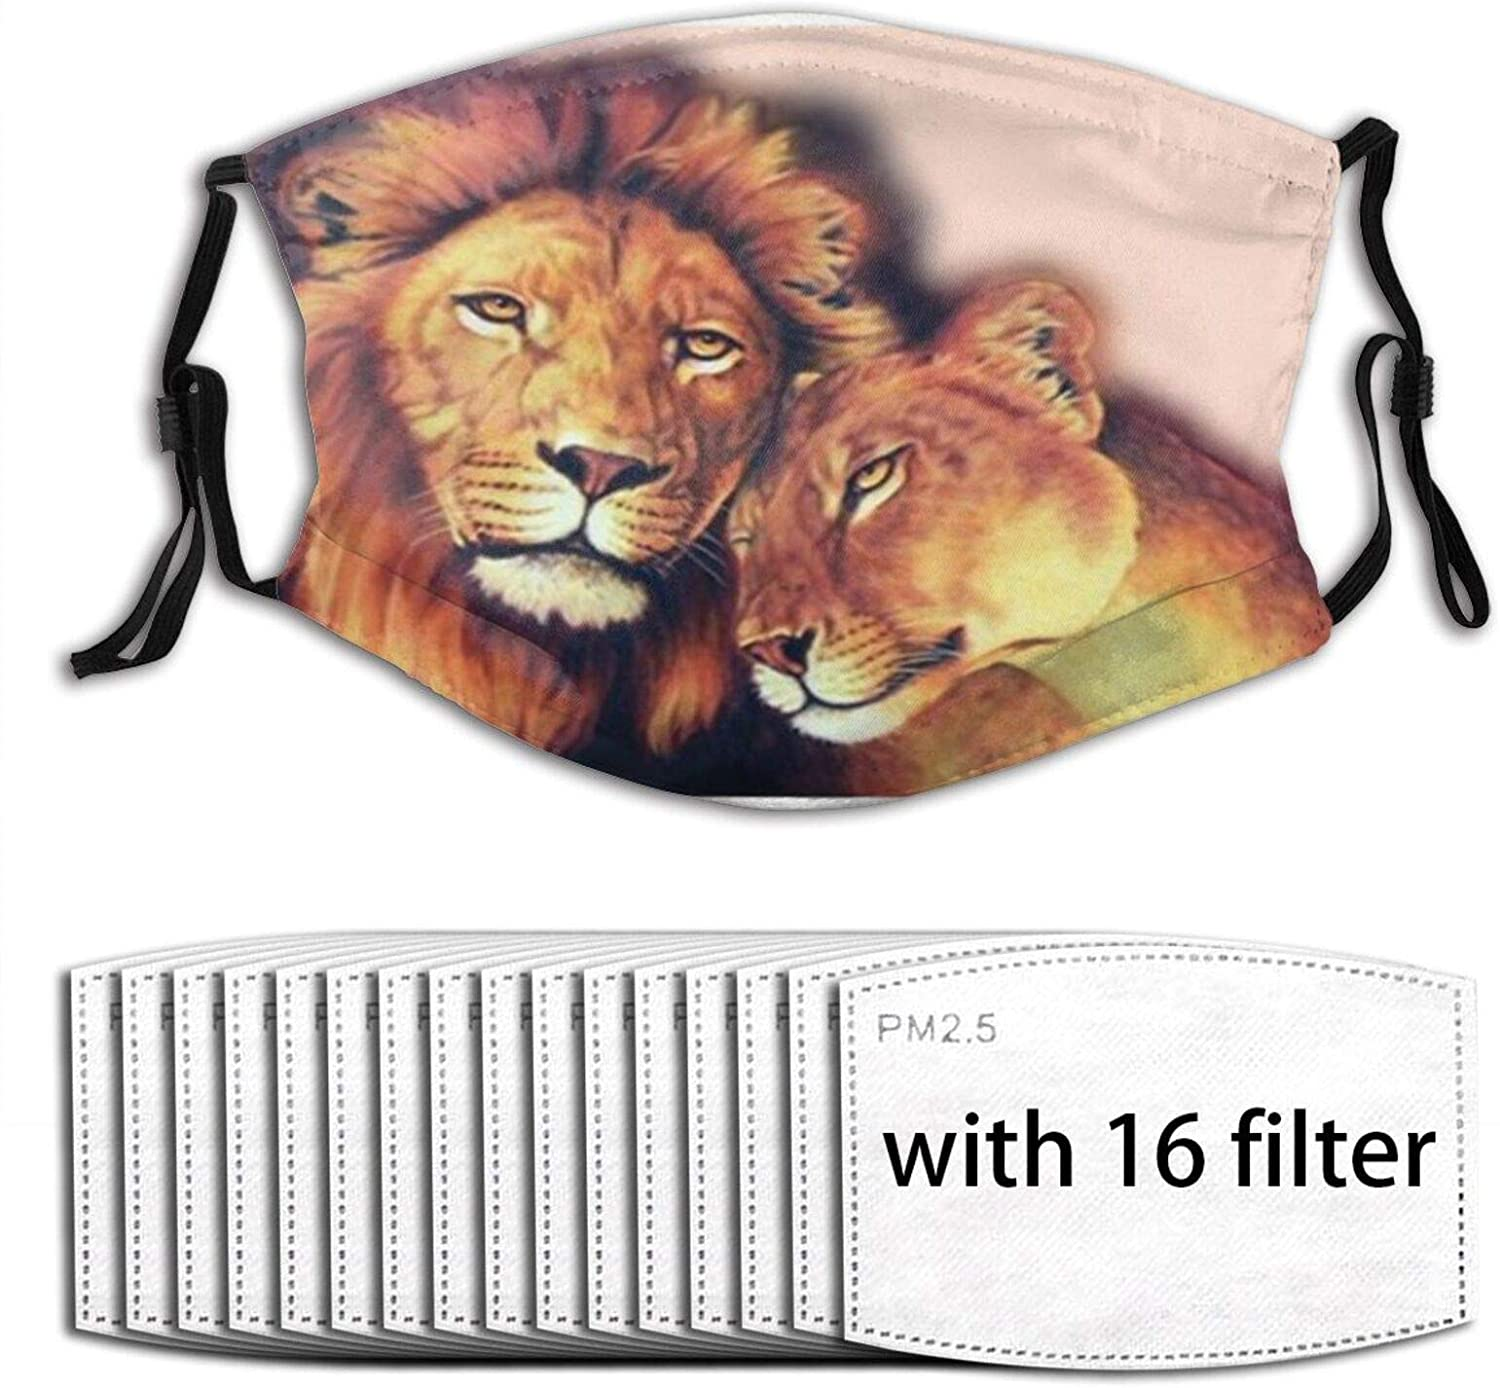 Cool Animal&Lions Painting - Soulmates Double Layer Unisex Adjustable Ear Loops Face Mouth Covering Washable with 16 Filters